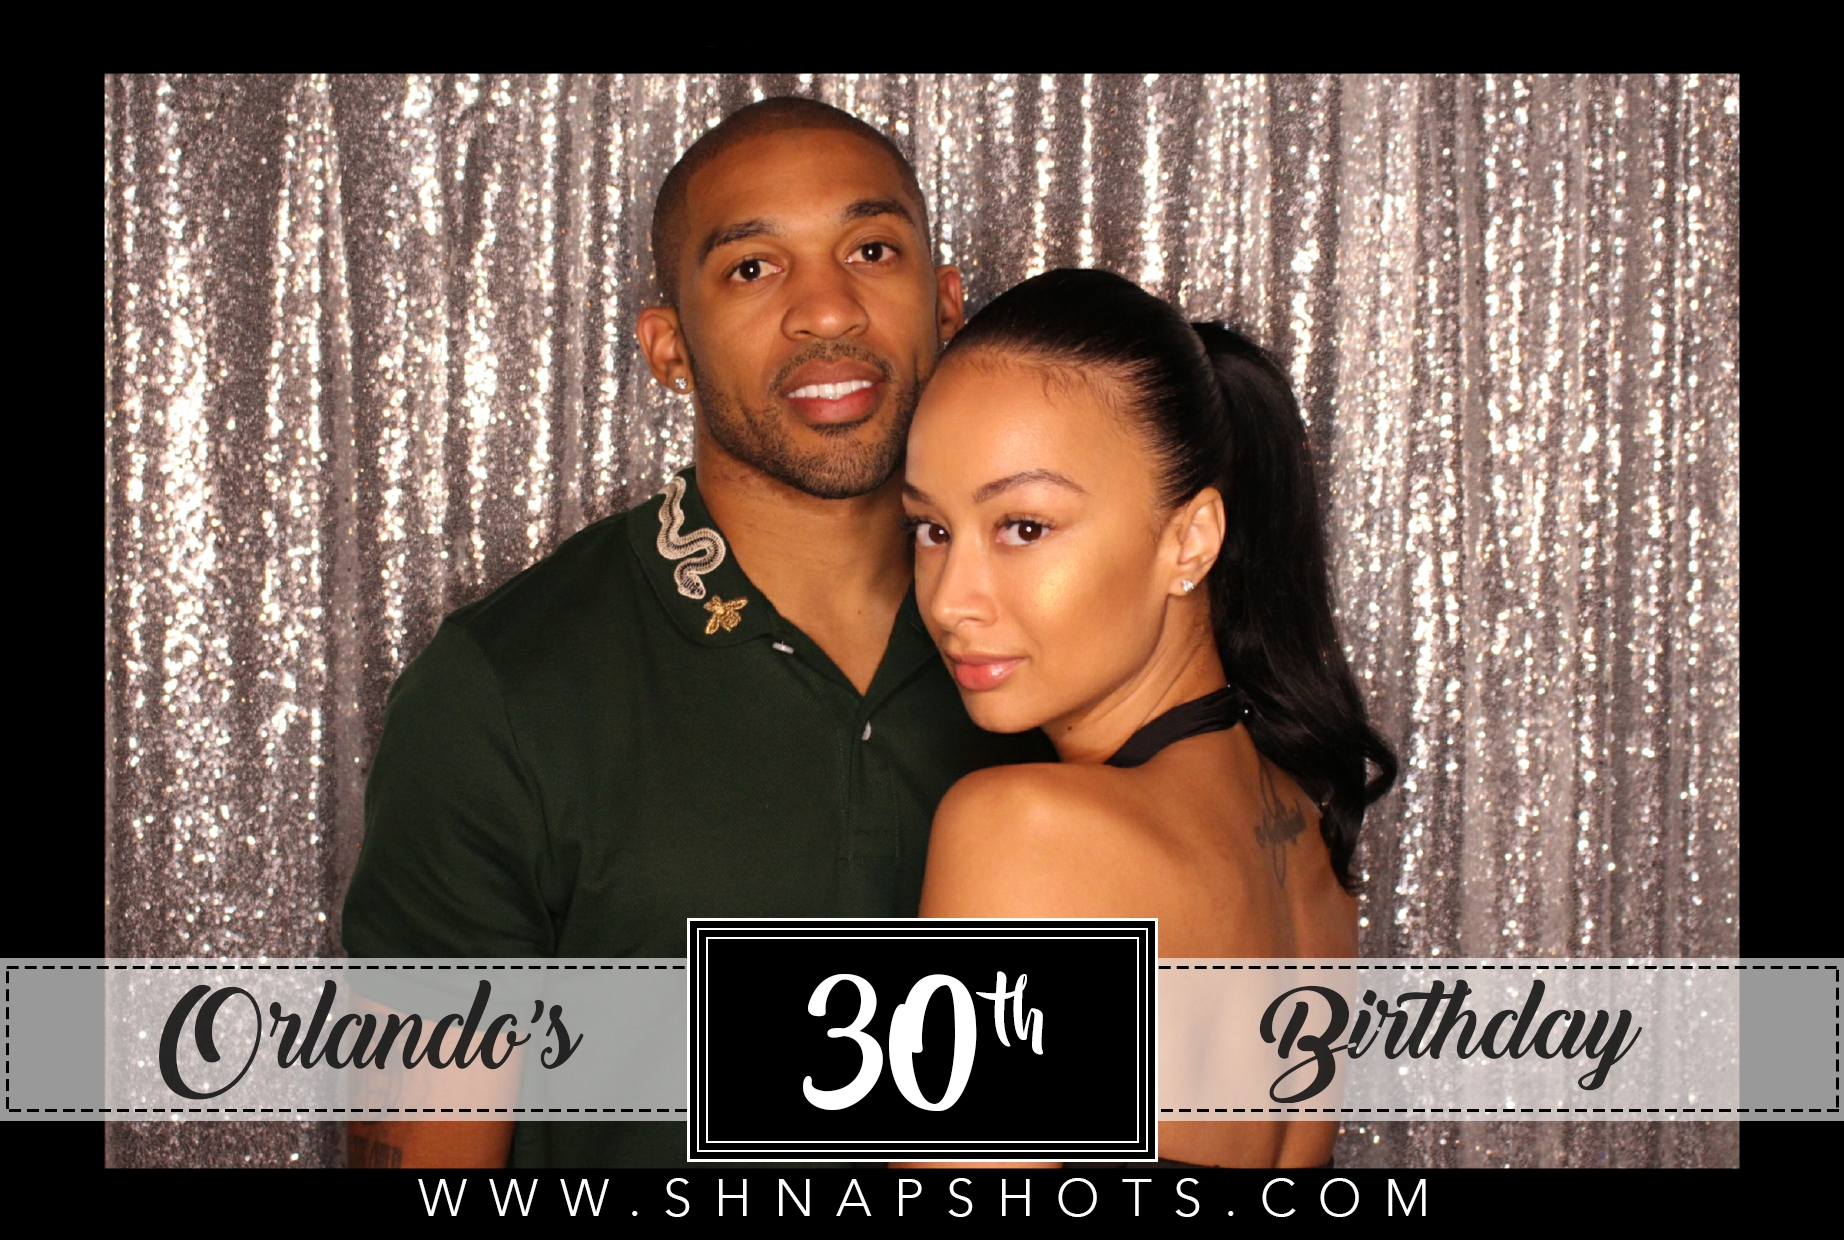 Orlando Scandrick's 30th Birthday